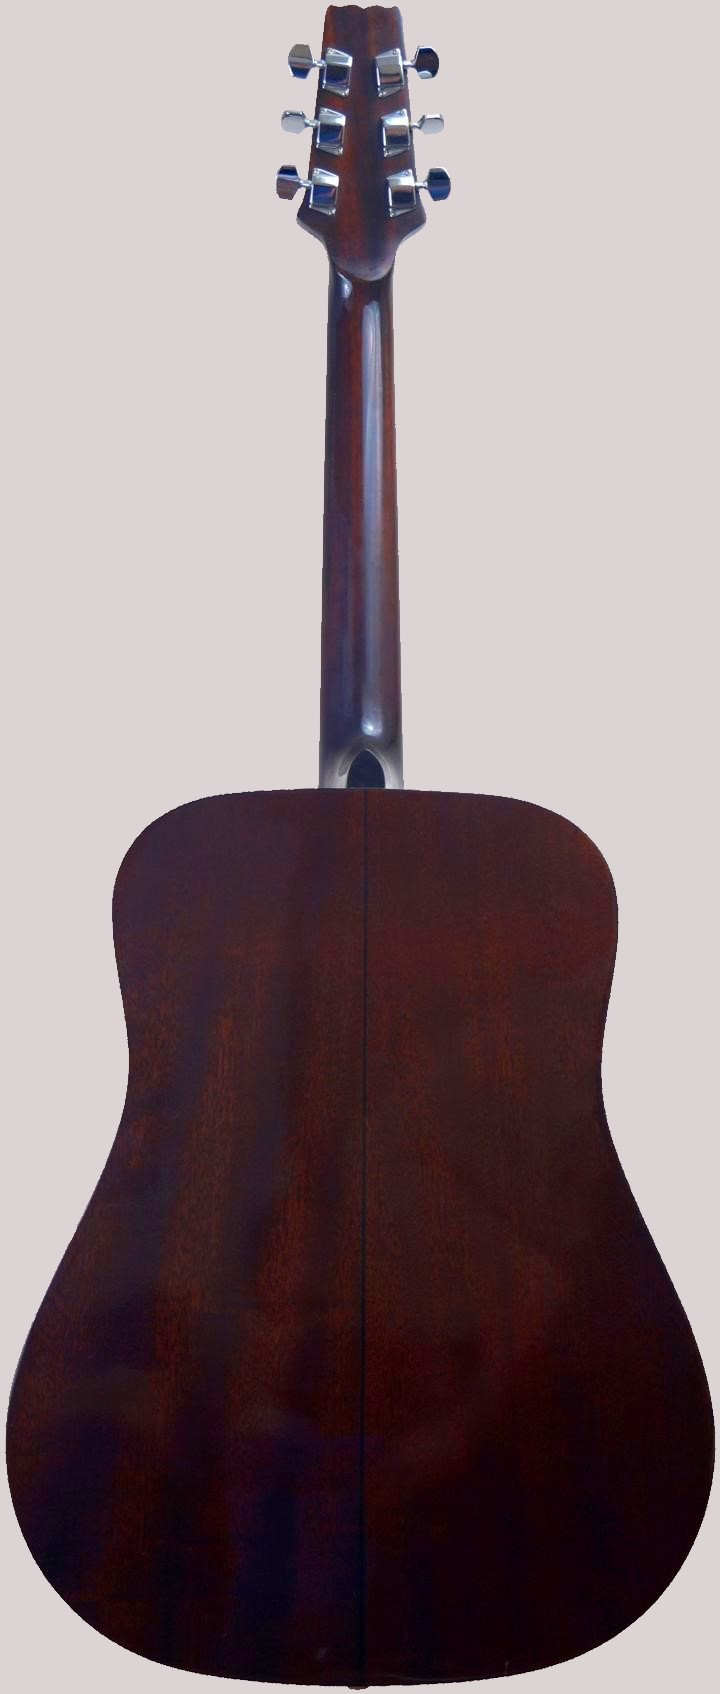 Japanese made mahogany 80s aria acoustic at Ukulele Corner